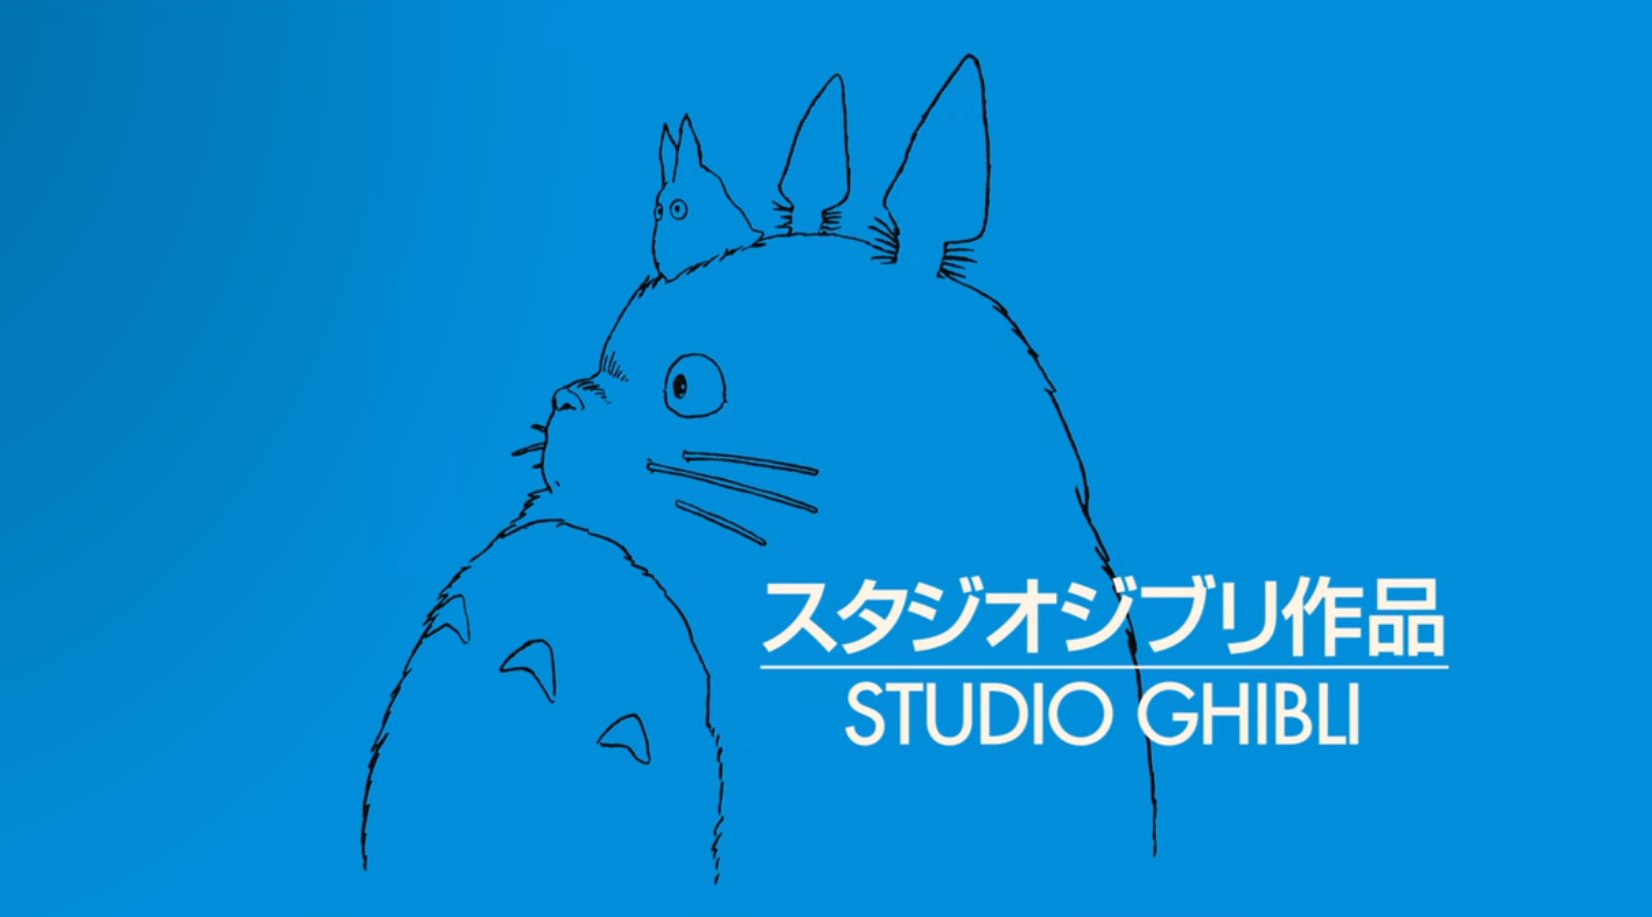 The studio ghibli logo seen before all studio Ghibli movies